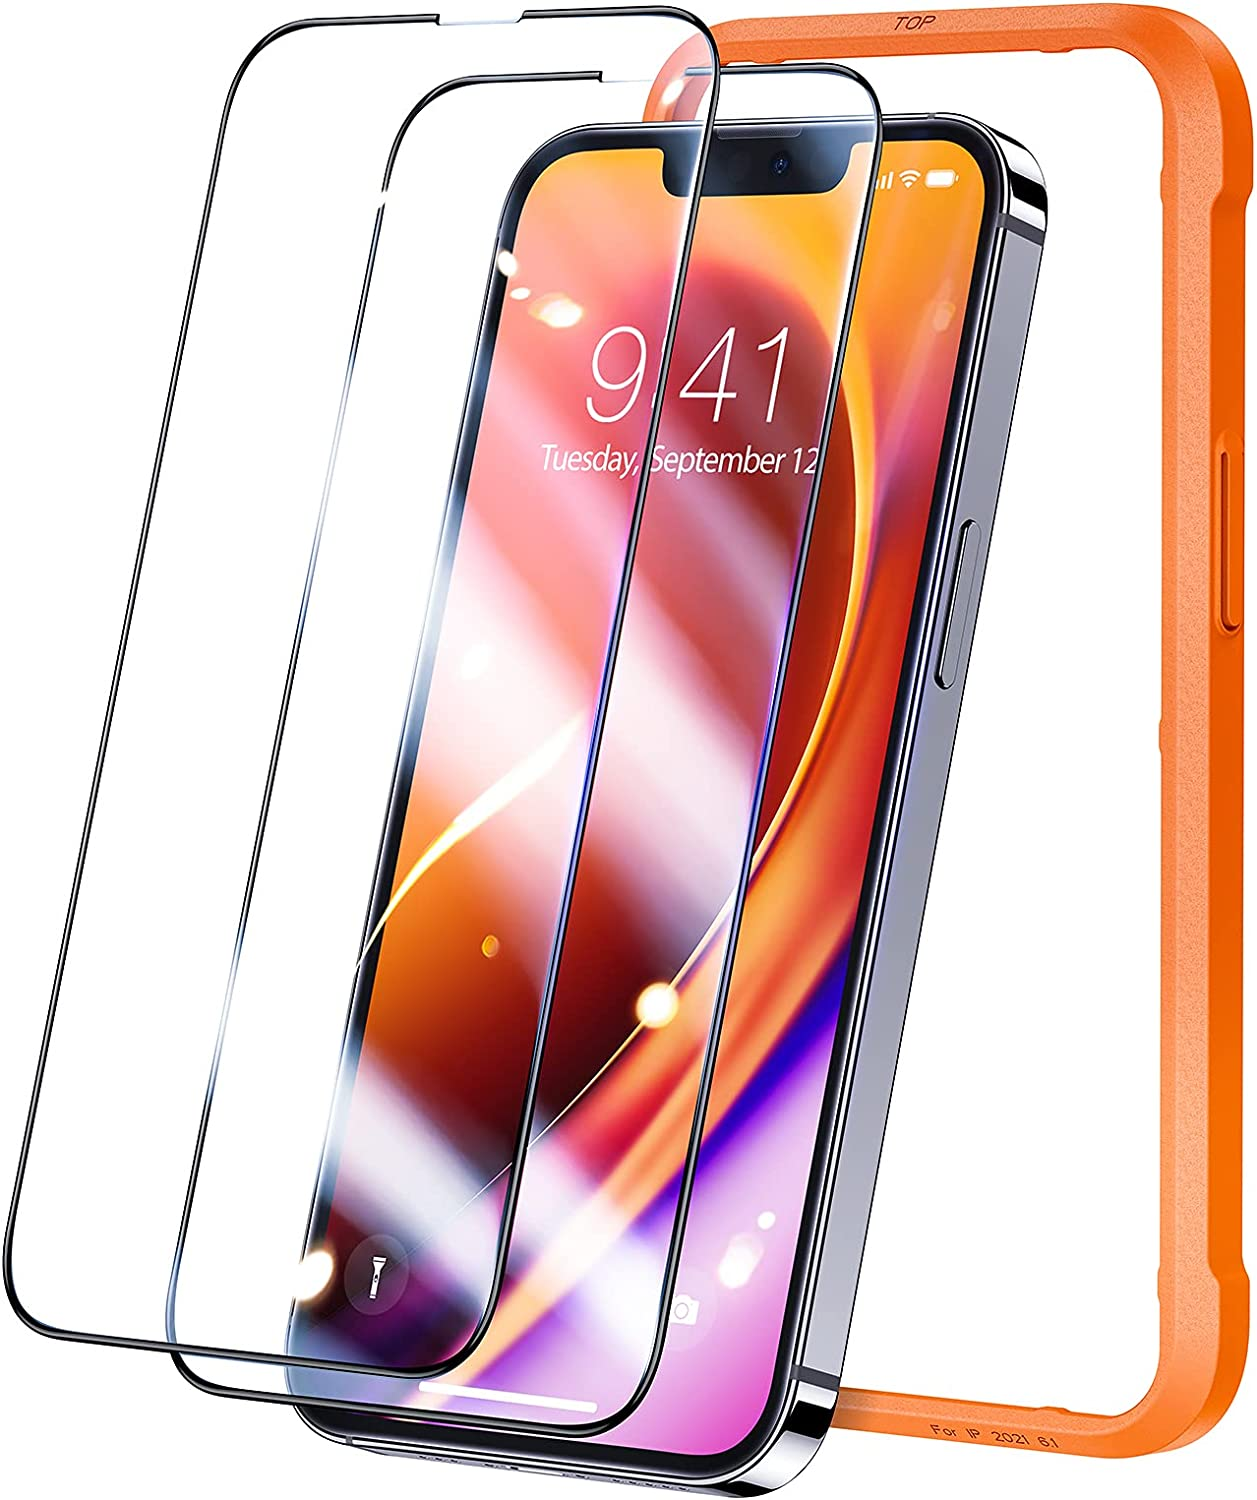 TORRAS Diamonds Hard for iPhone 13 Screen Protector, iPhone 13 Pro Screen Protector, [Military Grade Shatterproof] [Eye Protection] Tempered Glass Film 6.1''-2 Pack